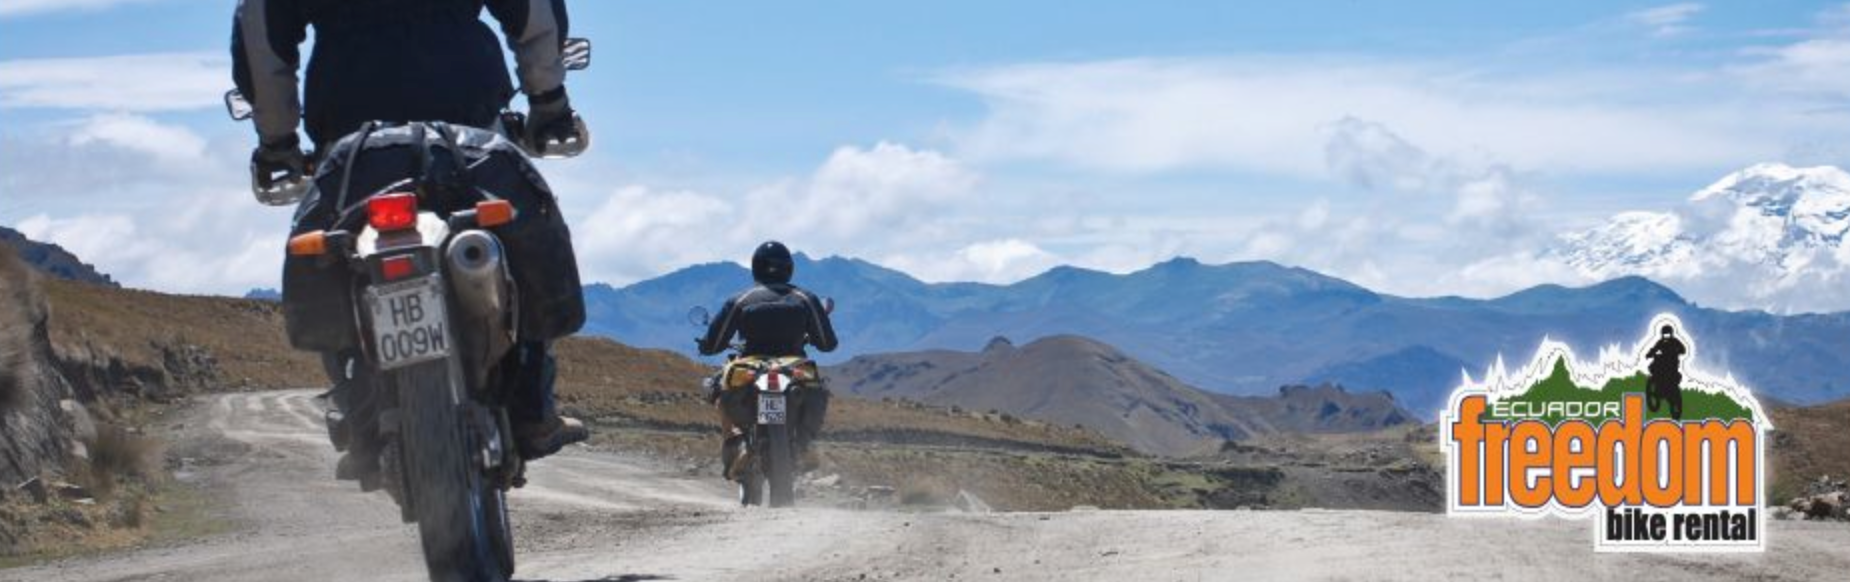 You can have this experience all on your own with a quick call to my friends at Ecuador Freedom Bike Rental. Just click the link below, make your reservation, and tell me it wasn't the best decision you've made all year.  www.freedombikerental.com